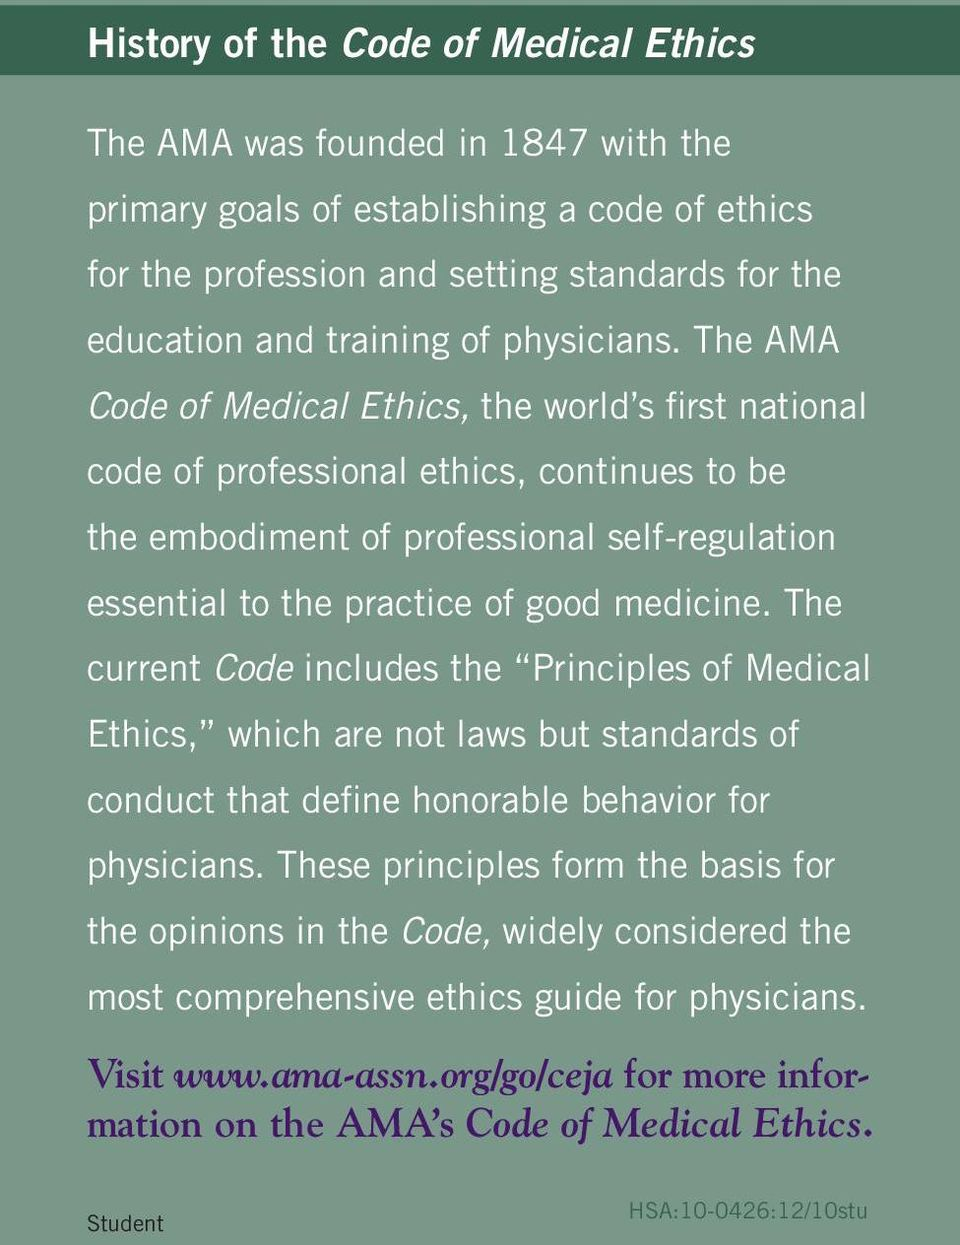 The AMA Code of Medical Ethics, the world s first national code of professional ethics, continues to be the embodiment of professional self-regulation essential to the practice of good medicine.